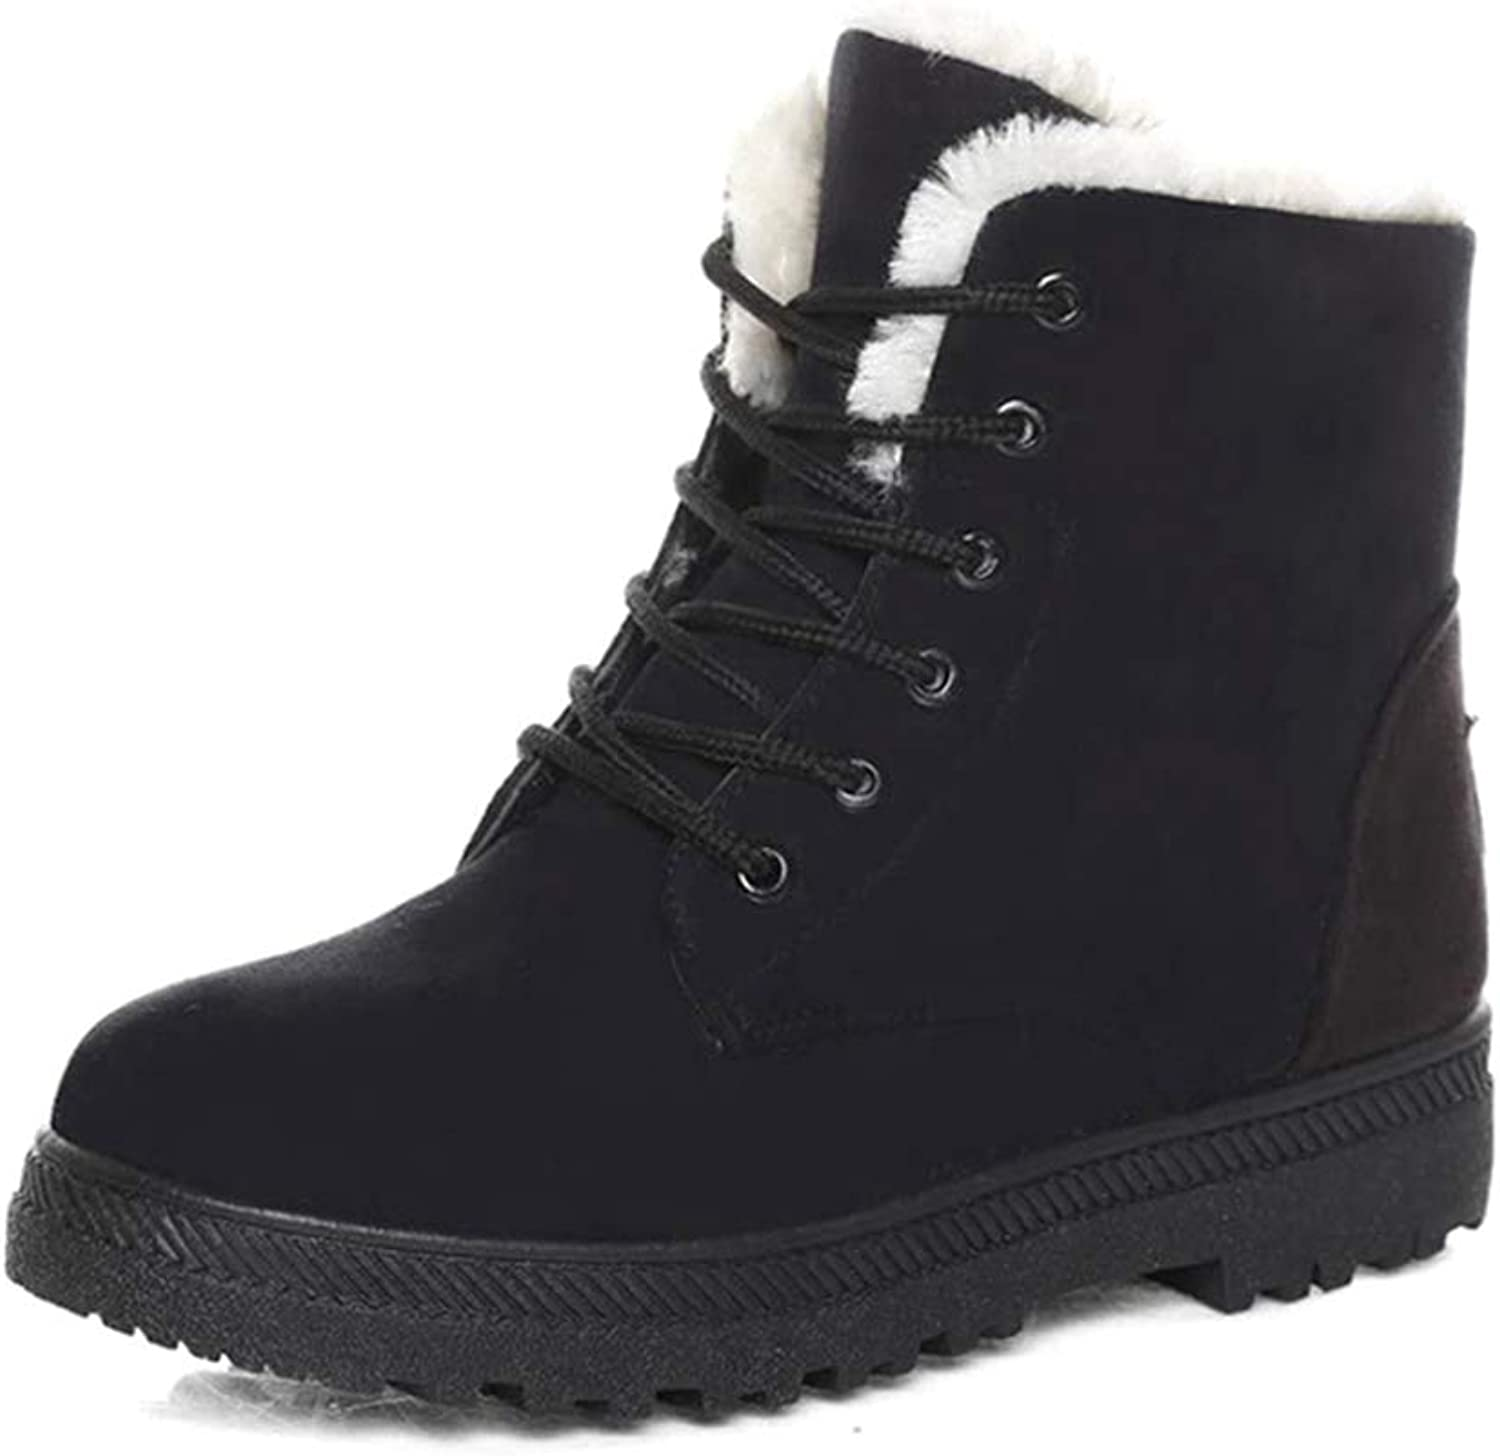 Zarbrina Women's Platform Lace Up Snow Ankle Boots Fashion Short Plush Suede Winter Fur Lined Round Toe Comfy Boots Casual Soft Sole Warm shoes